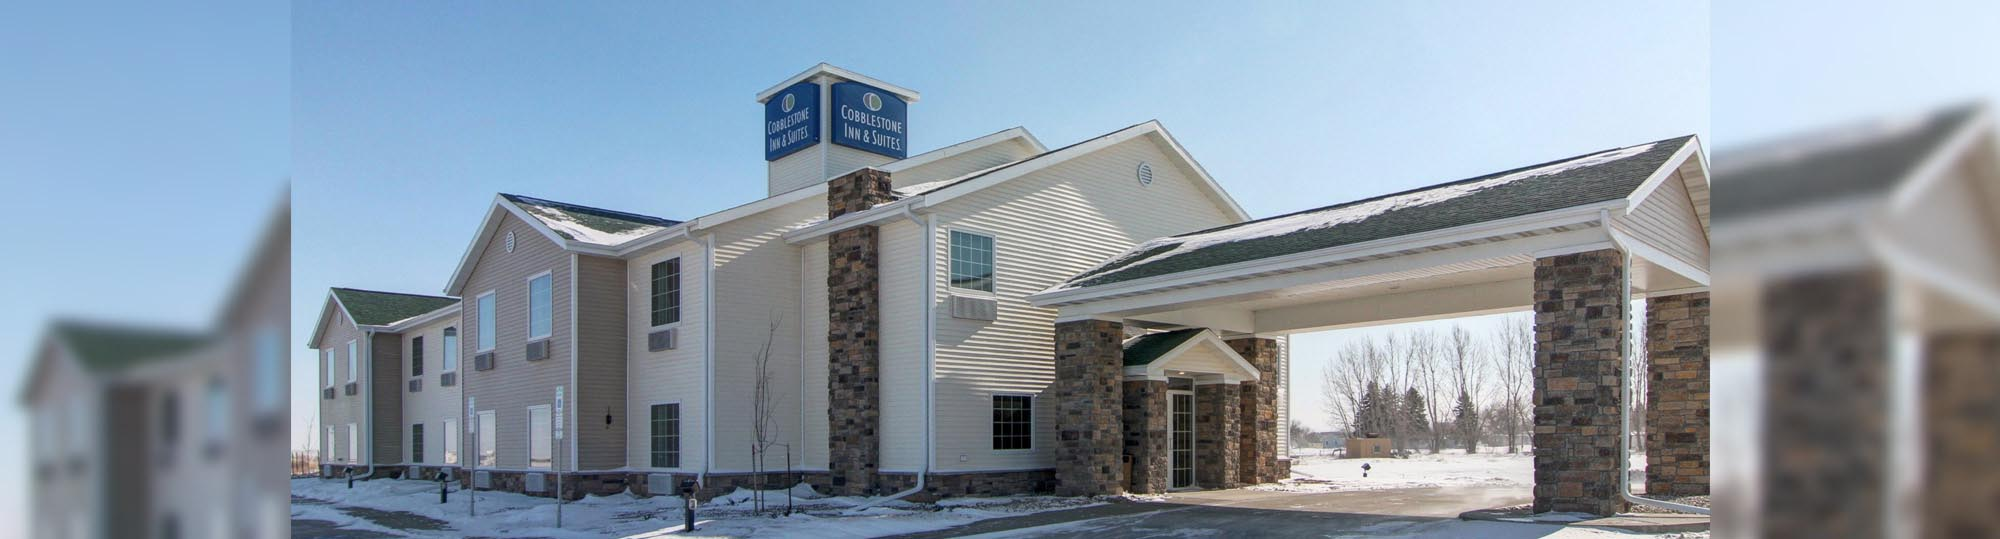 Cobblestone Inn & Suites Steele